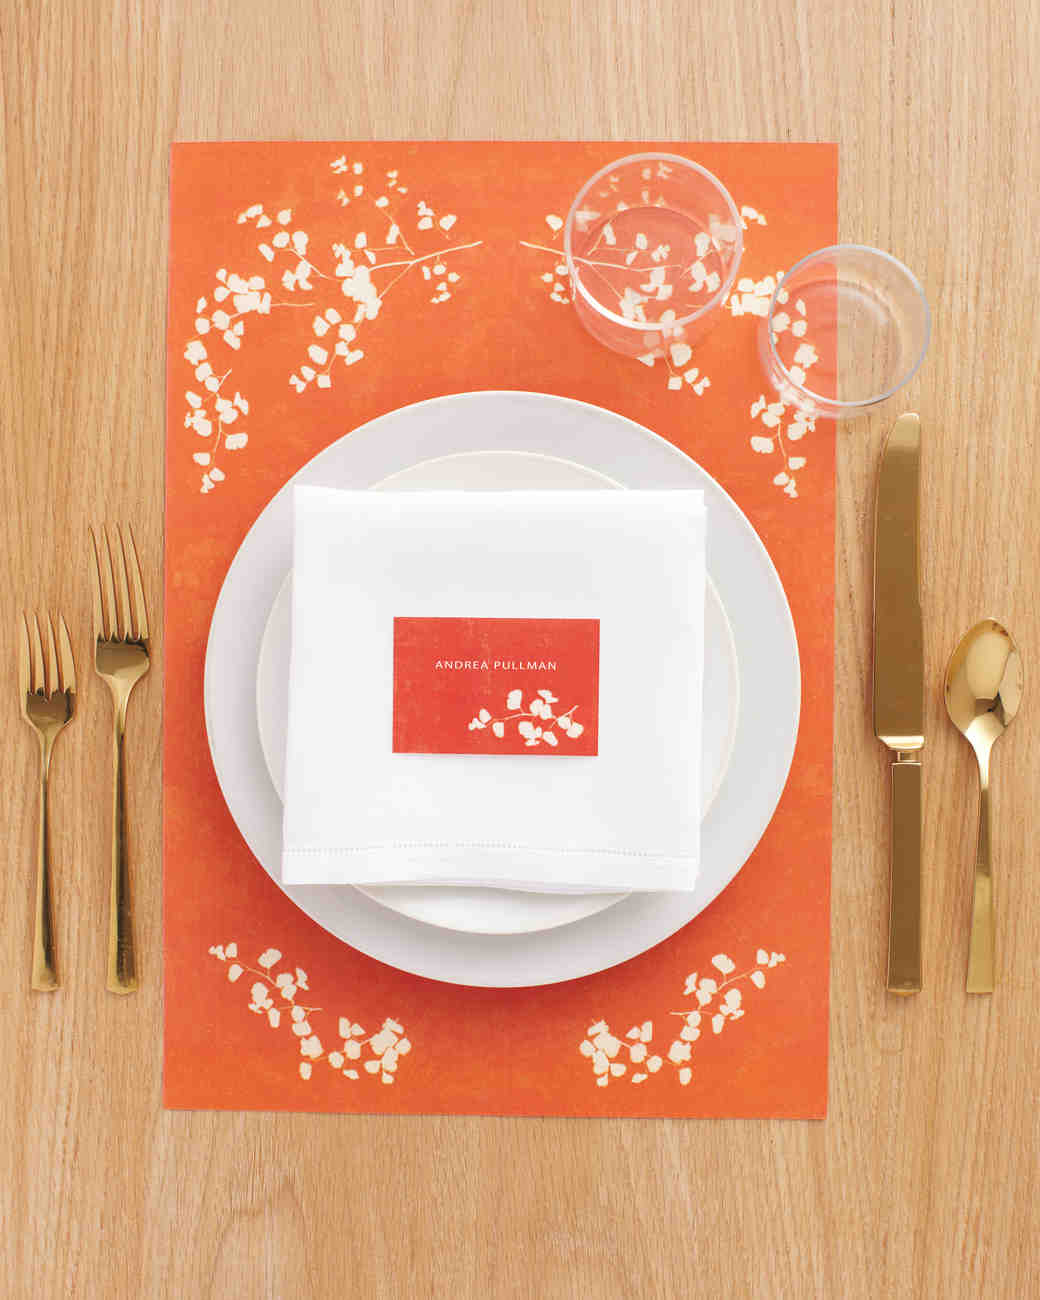 placemat-025-mwd110113.jpg